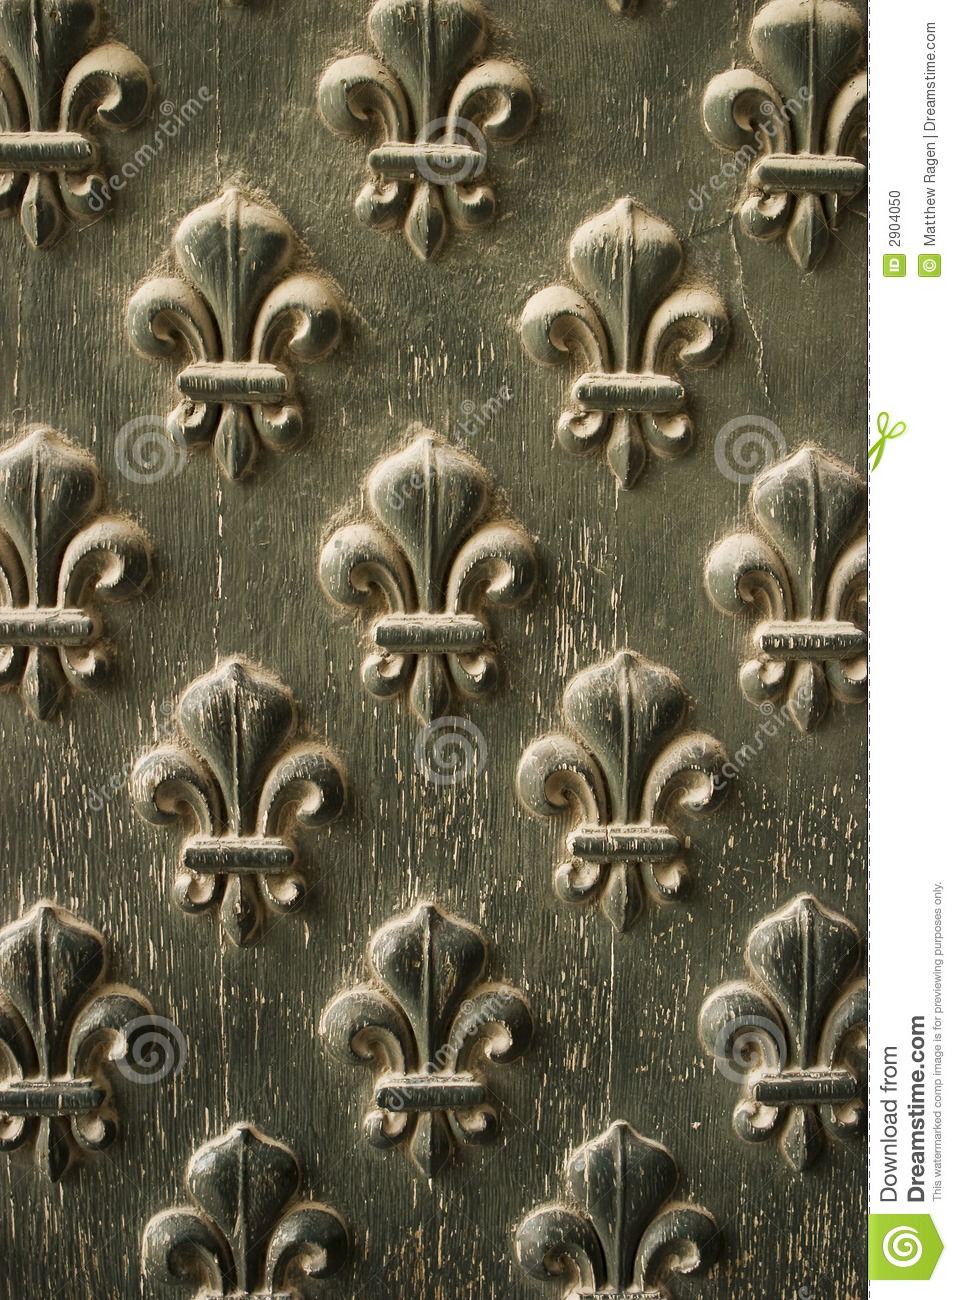 Fleur De Lis Pattern On Door Stock Photo  Image 2904050